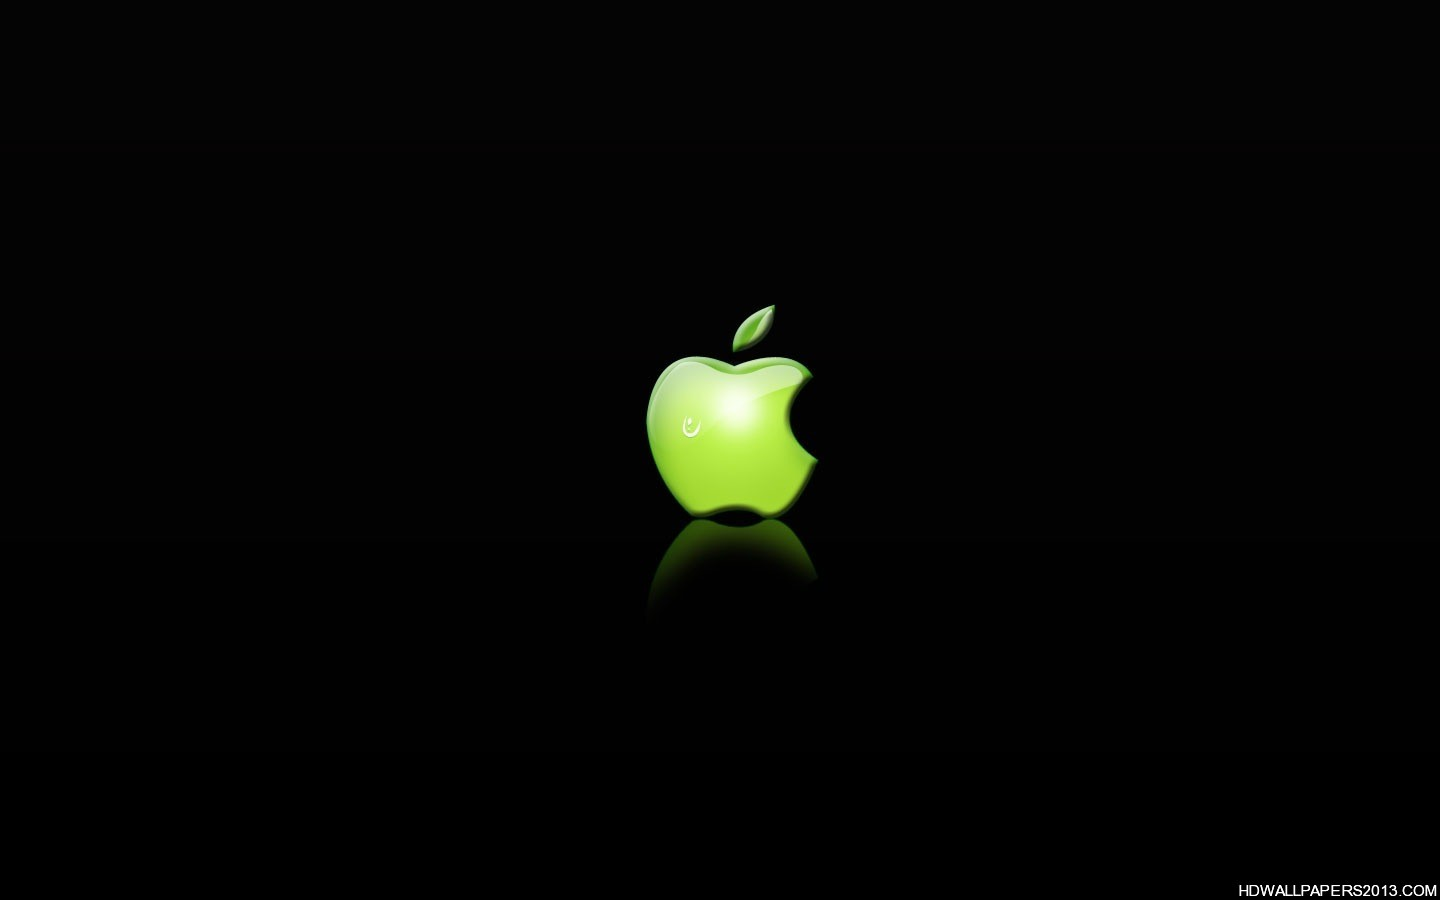 Wallpapers Mac High Definition Wallpapers High 1440x900